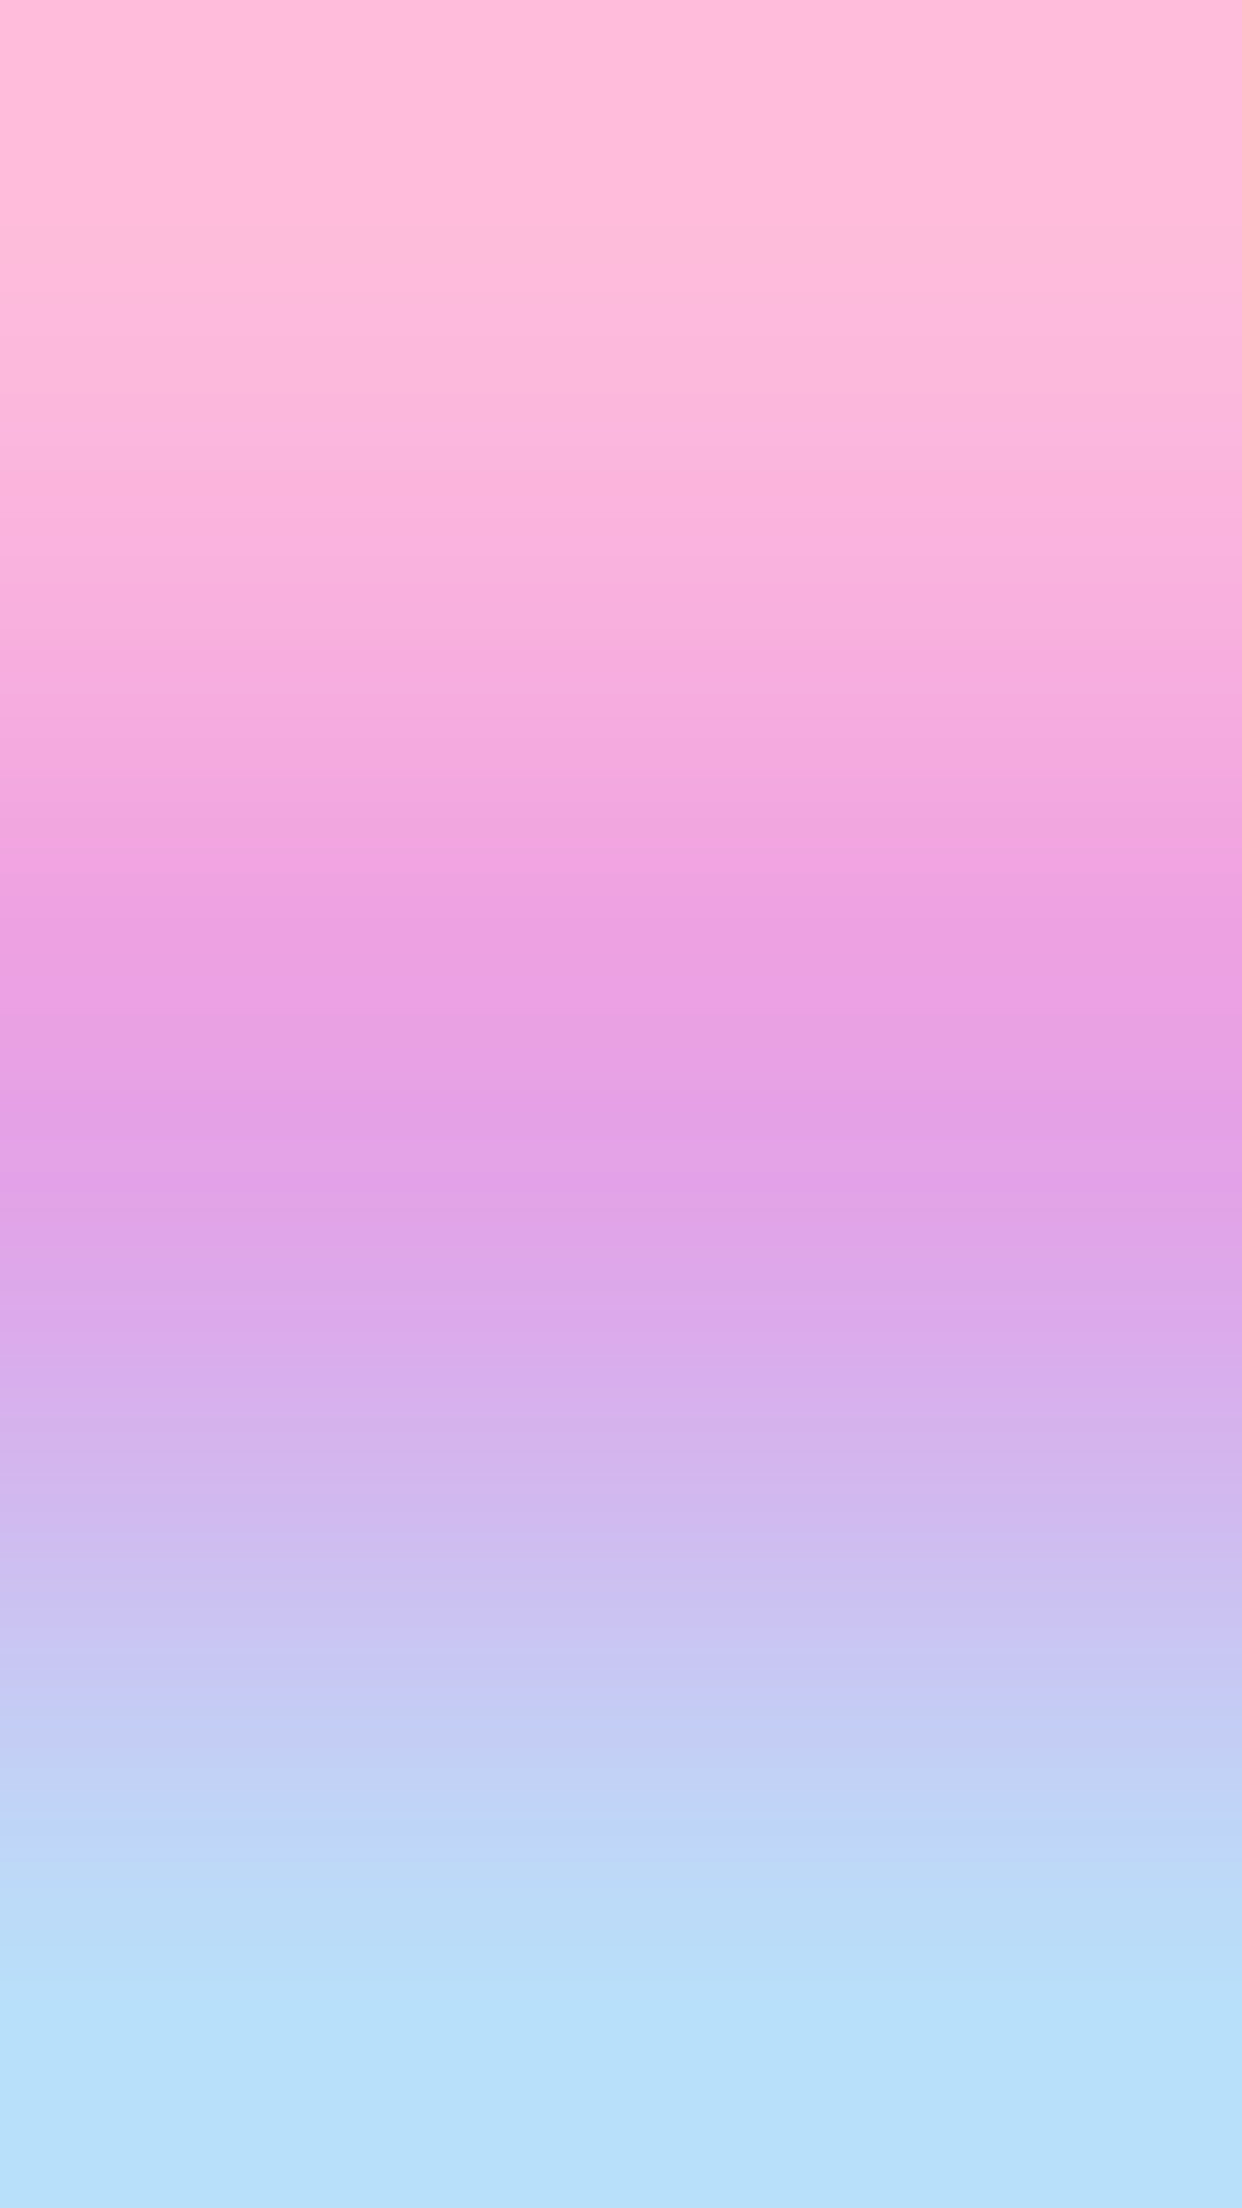 1242x2208 Wallpaper Background IPhone Android HD Pink Purple Gradient